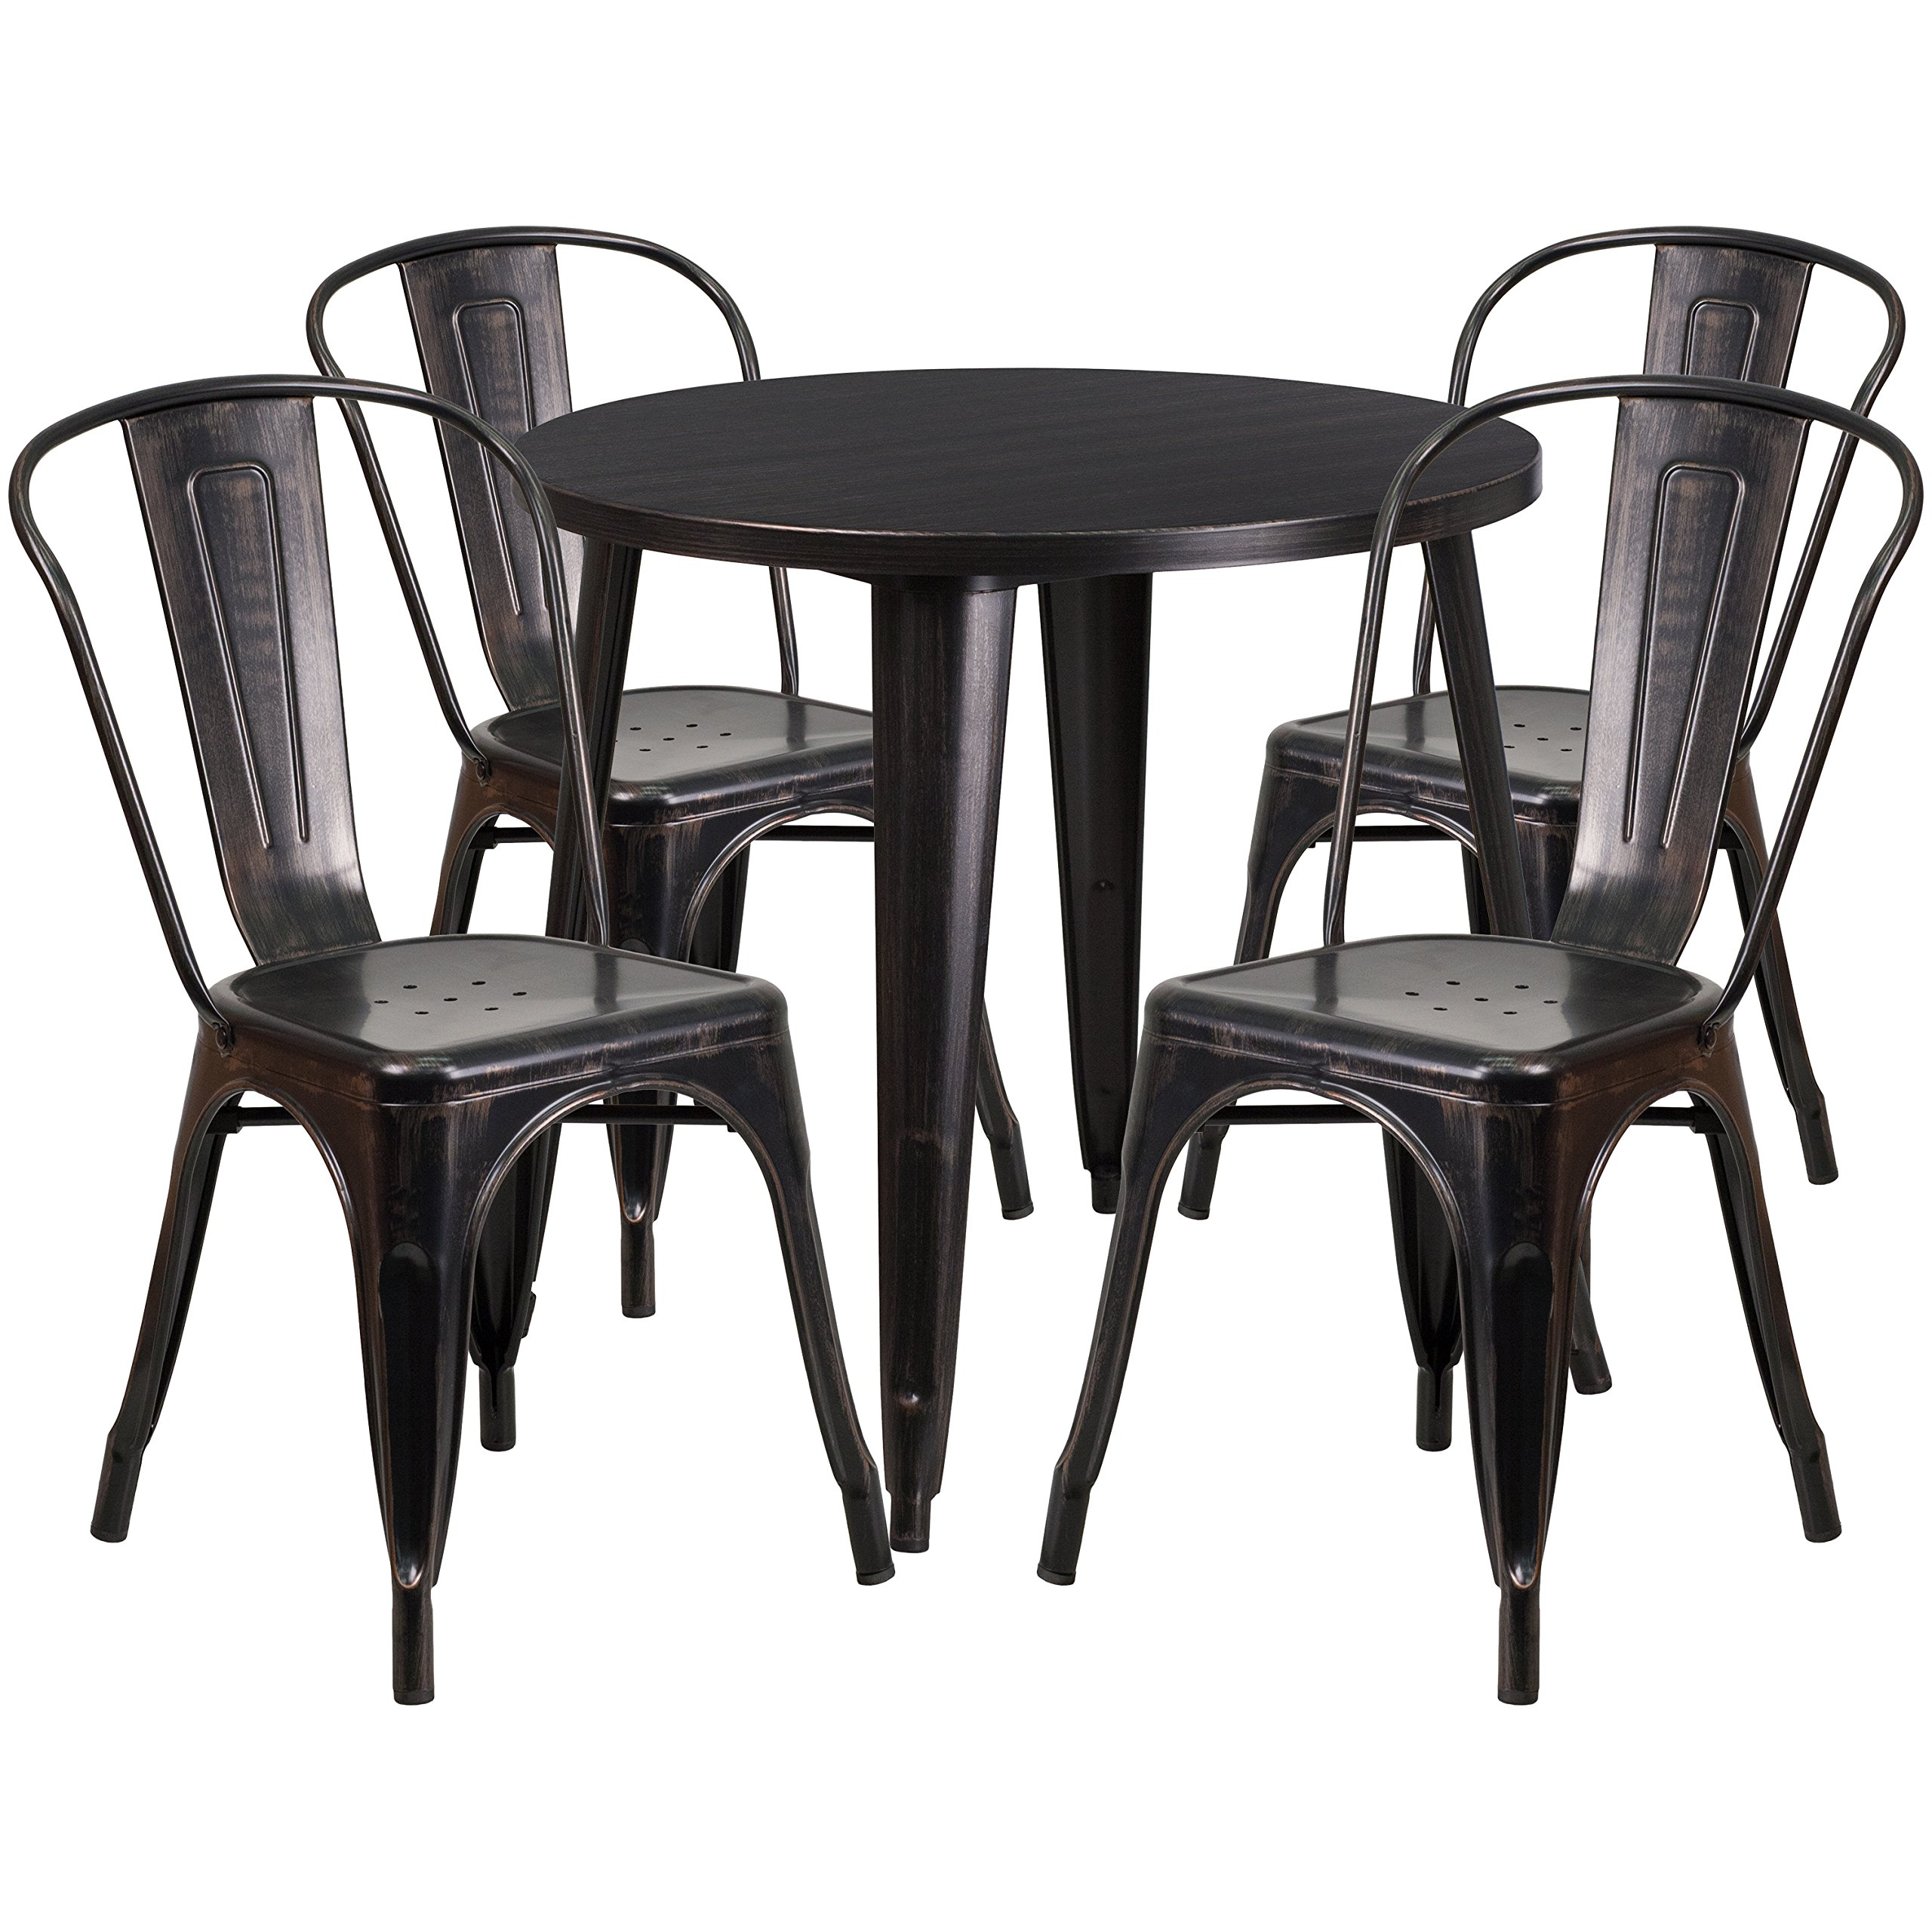 Flash Furniture 30'' Round Black-Antique Gold Metal Indoor-Outdoor Table Set with 4 Cafe Chairs